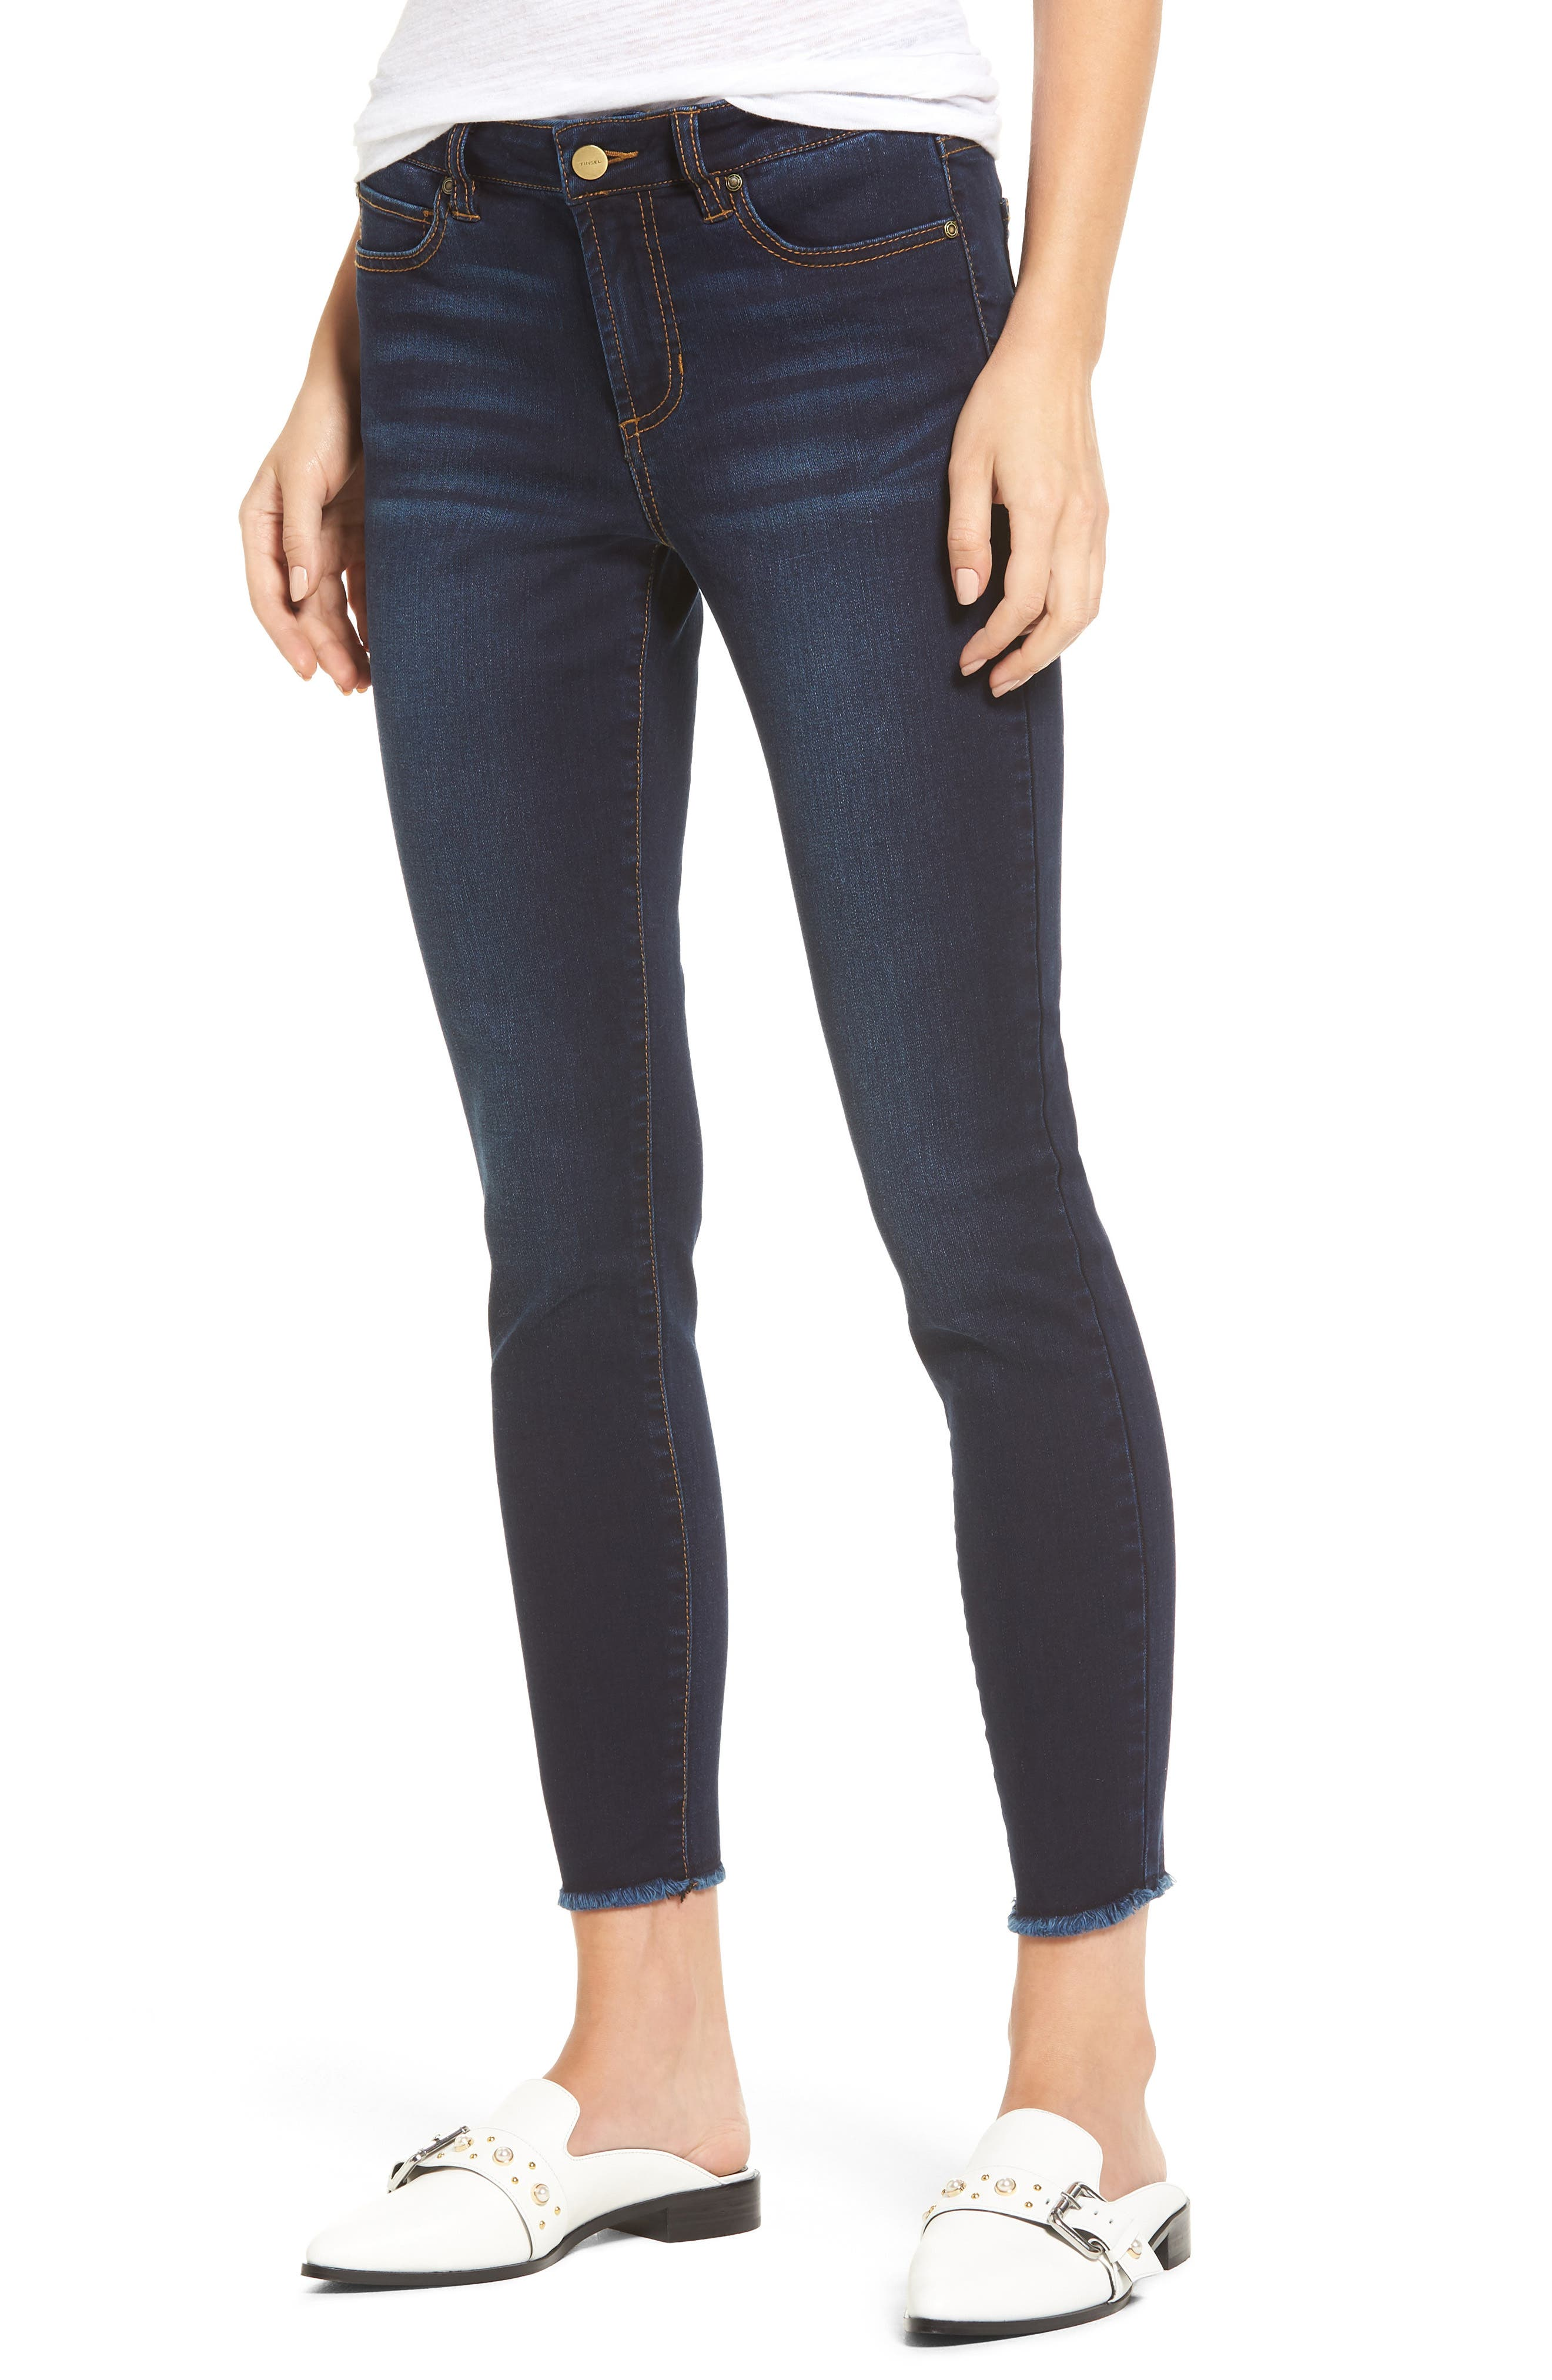 Alternate Image 1 Selected - Tinsel Ankle Skinny Jeans